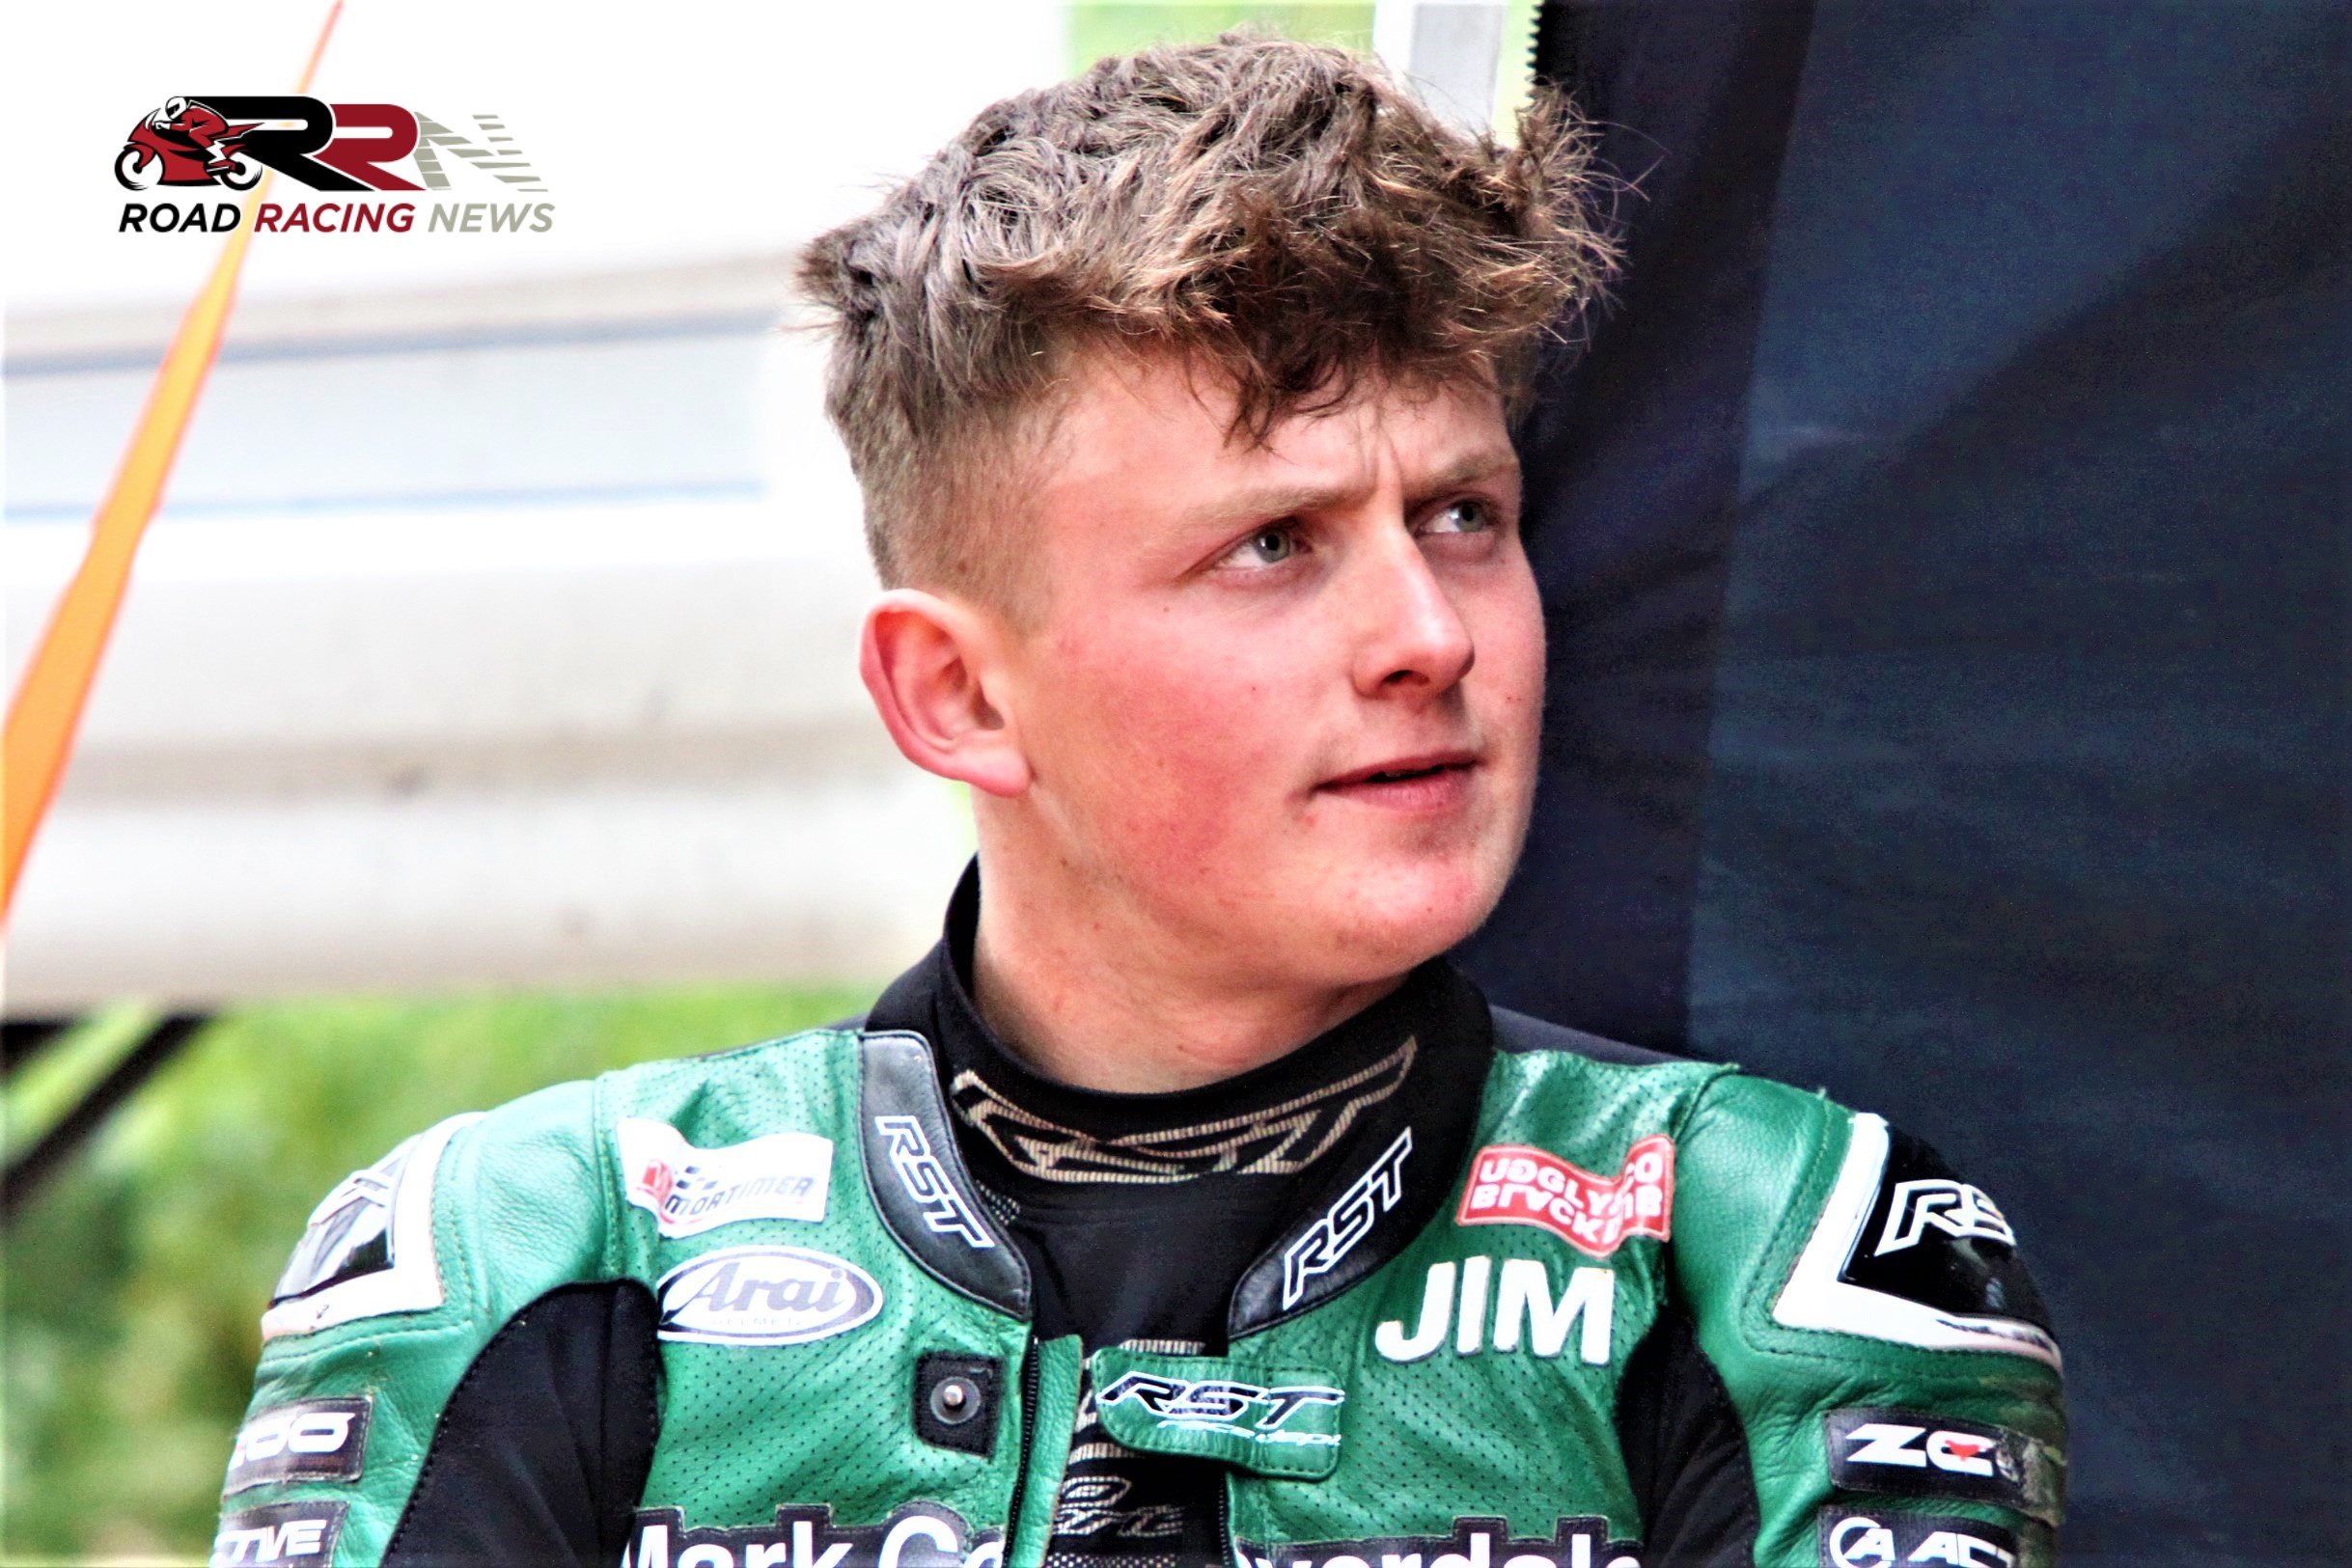 BSB Oulton Park: Top 20 Placing For Hind In BSS Qualifying Debut